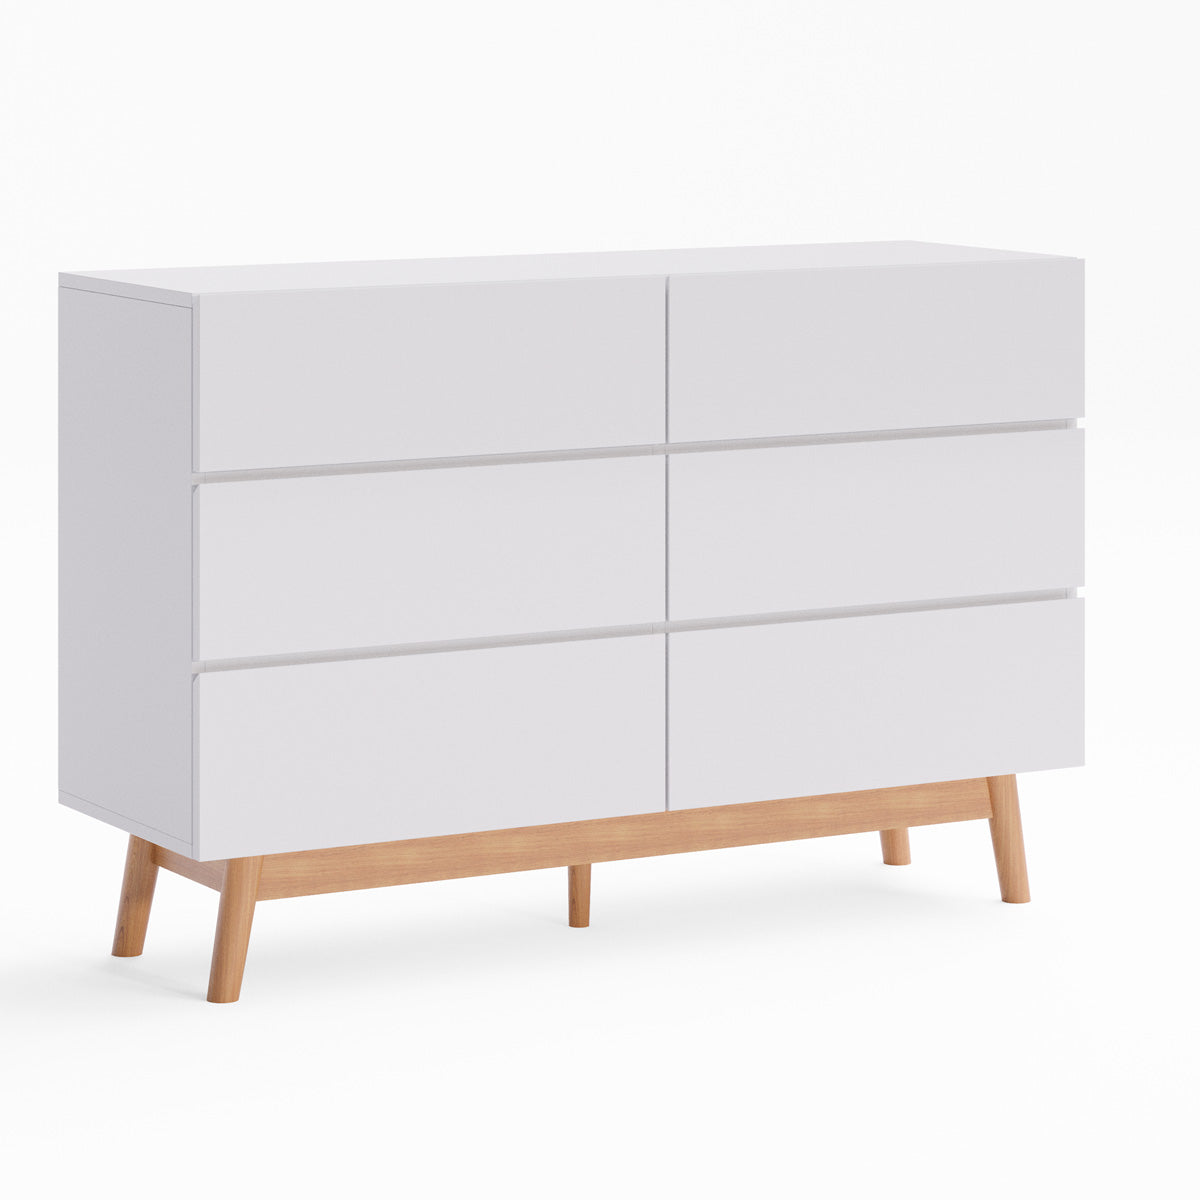 White Six Drawer Wooden Dresser Lowboy Chest (Aspen)